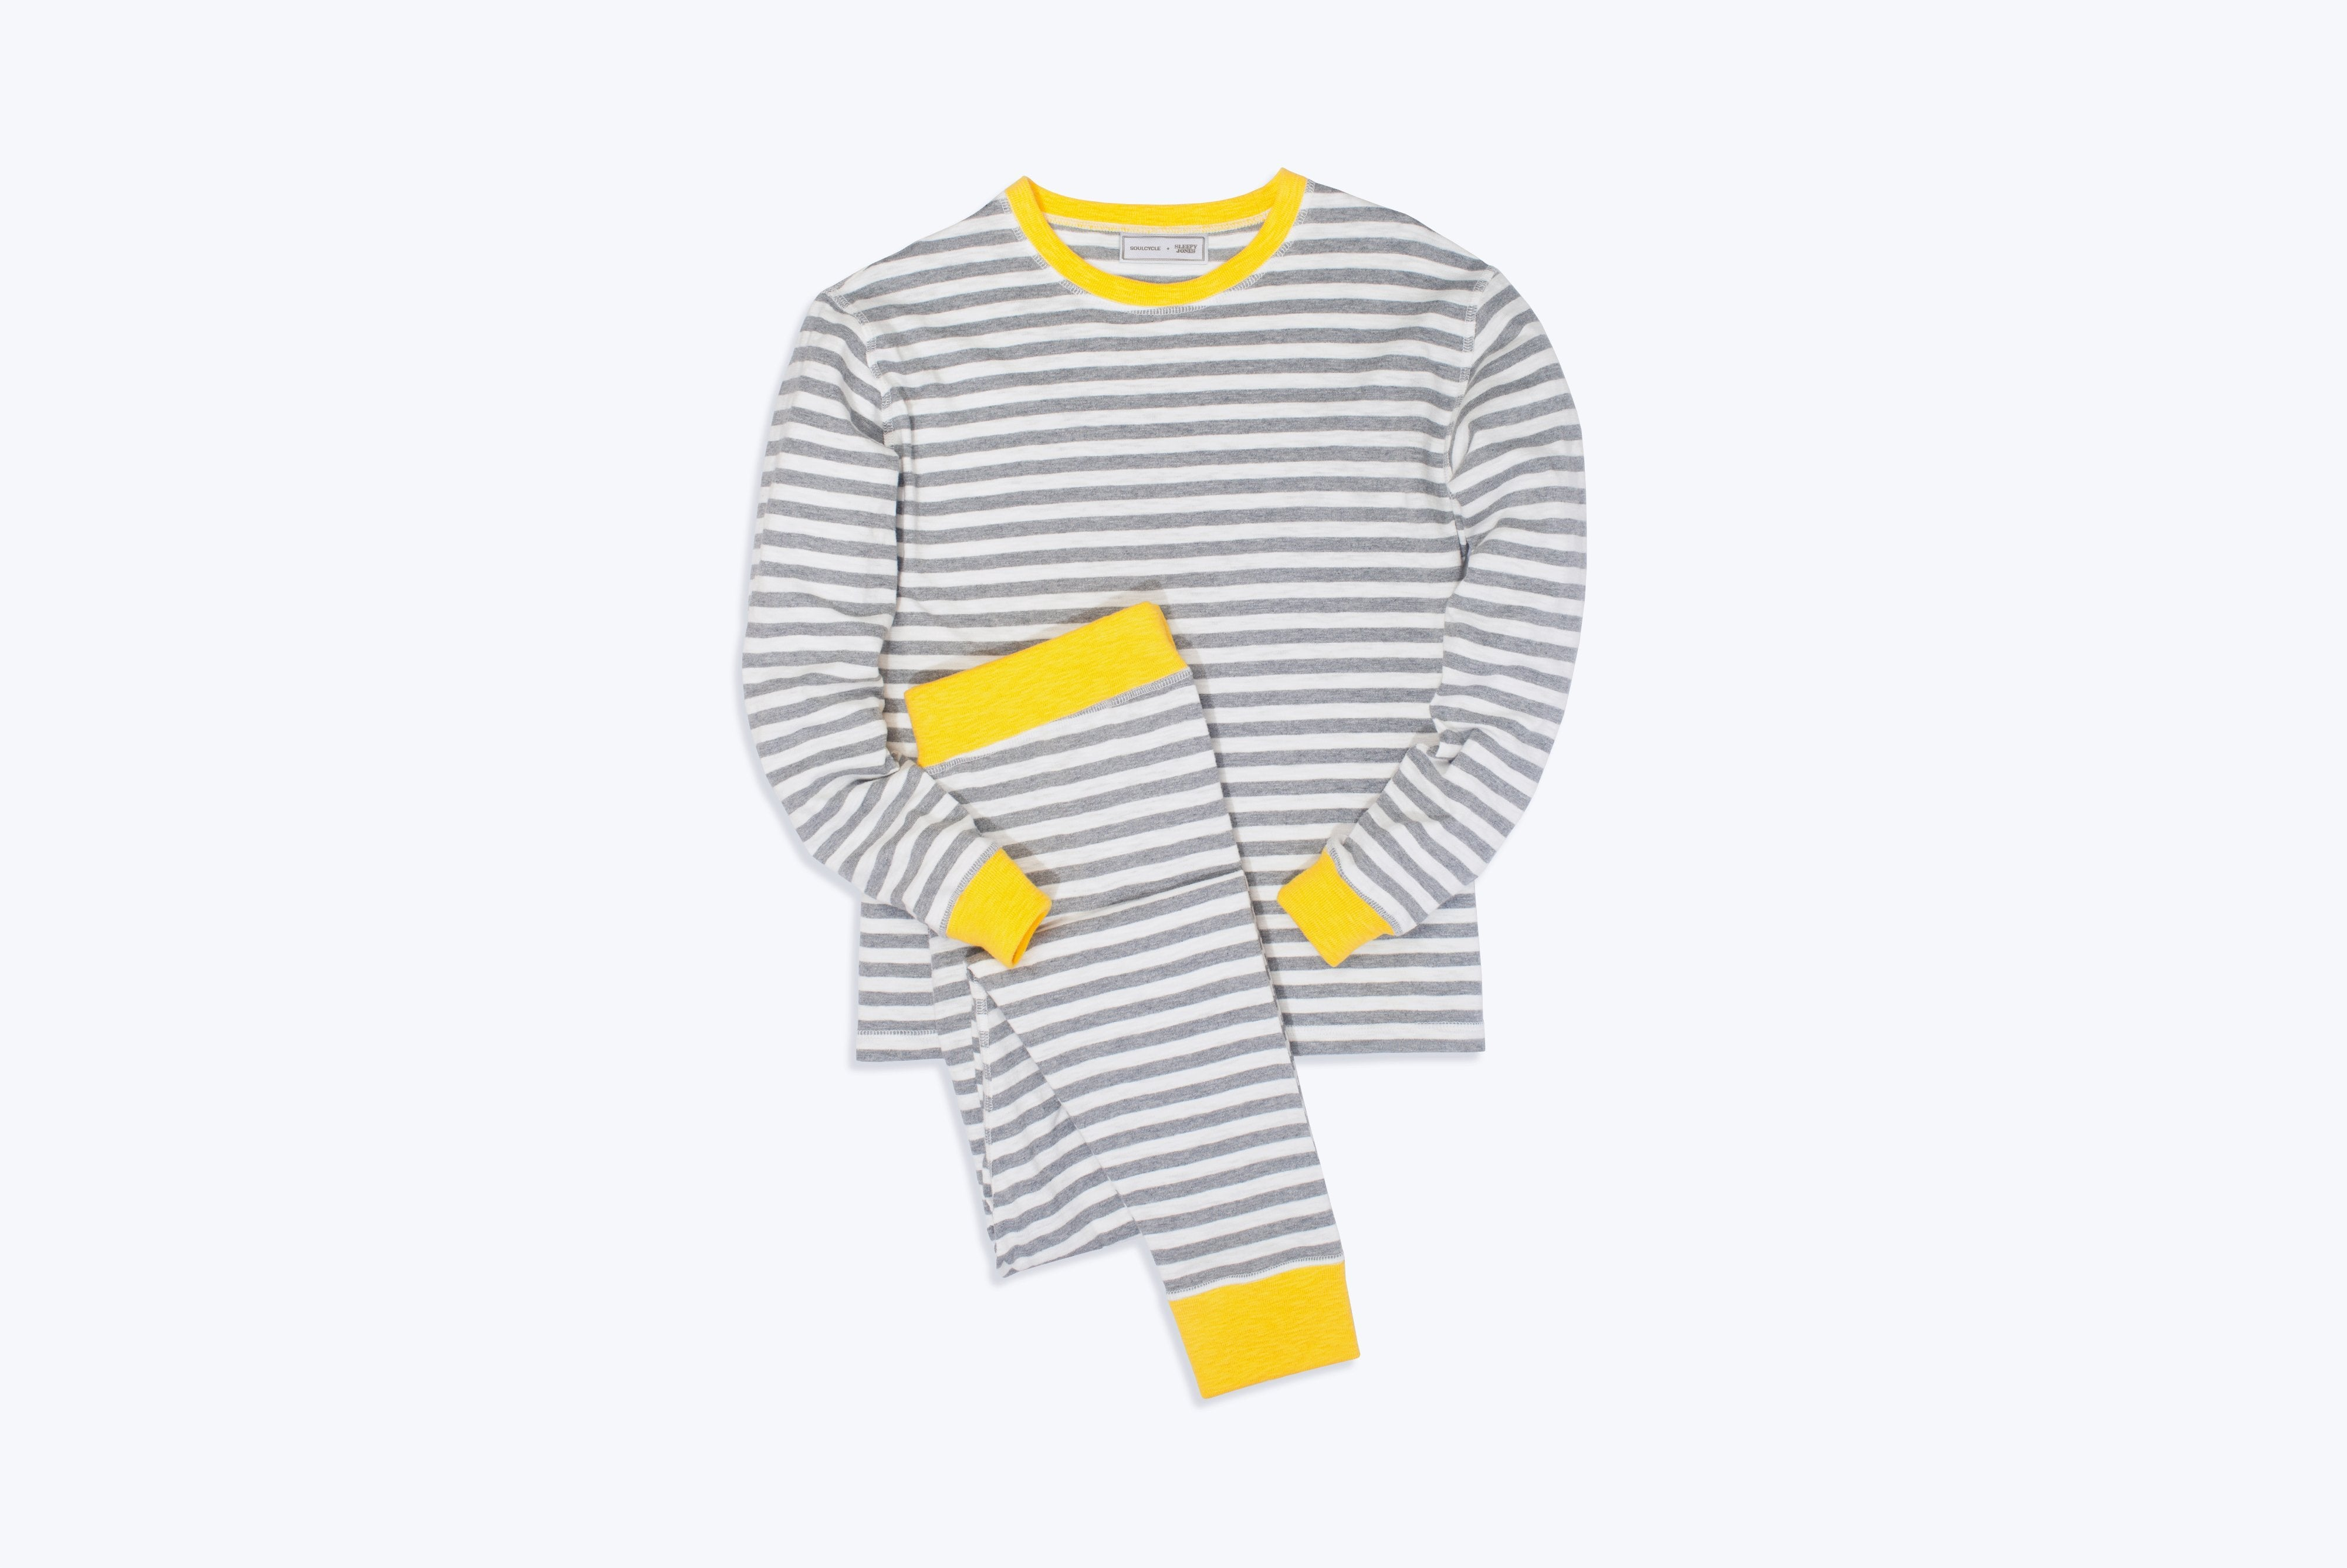 Sleepy Jones x SoulCycle Women's Thermal Set